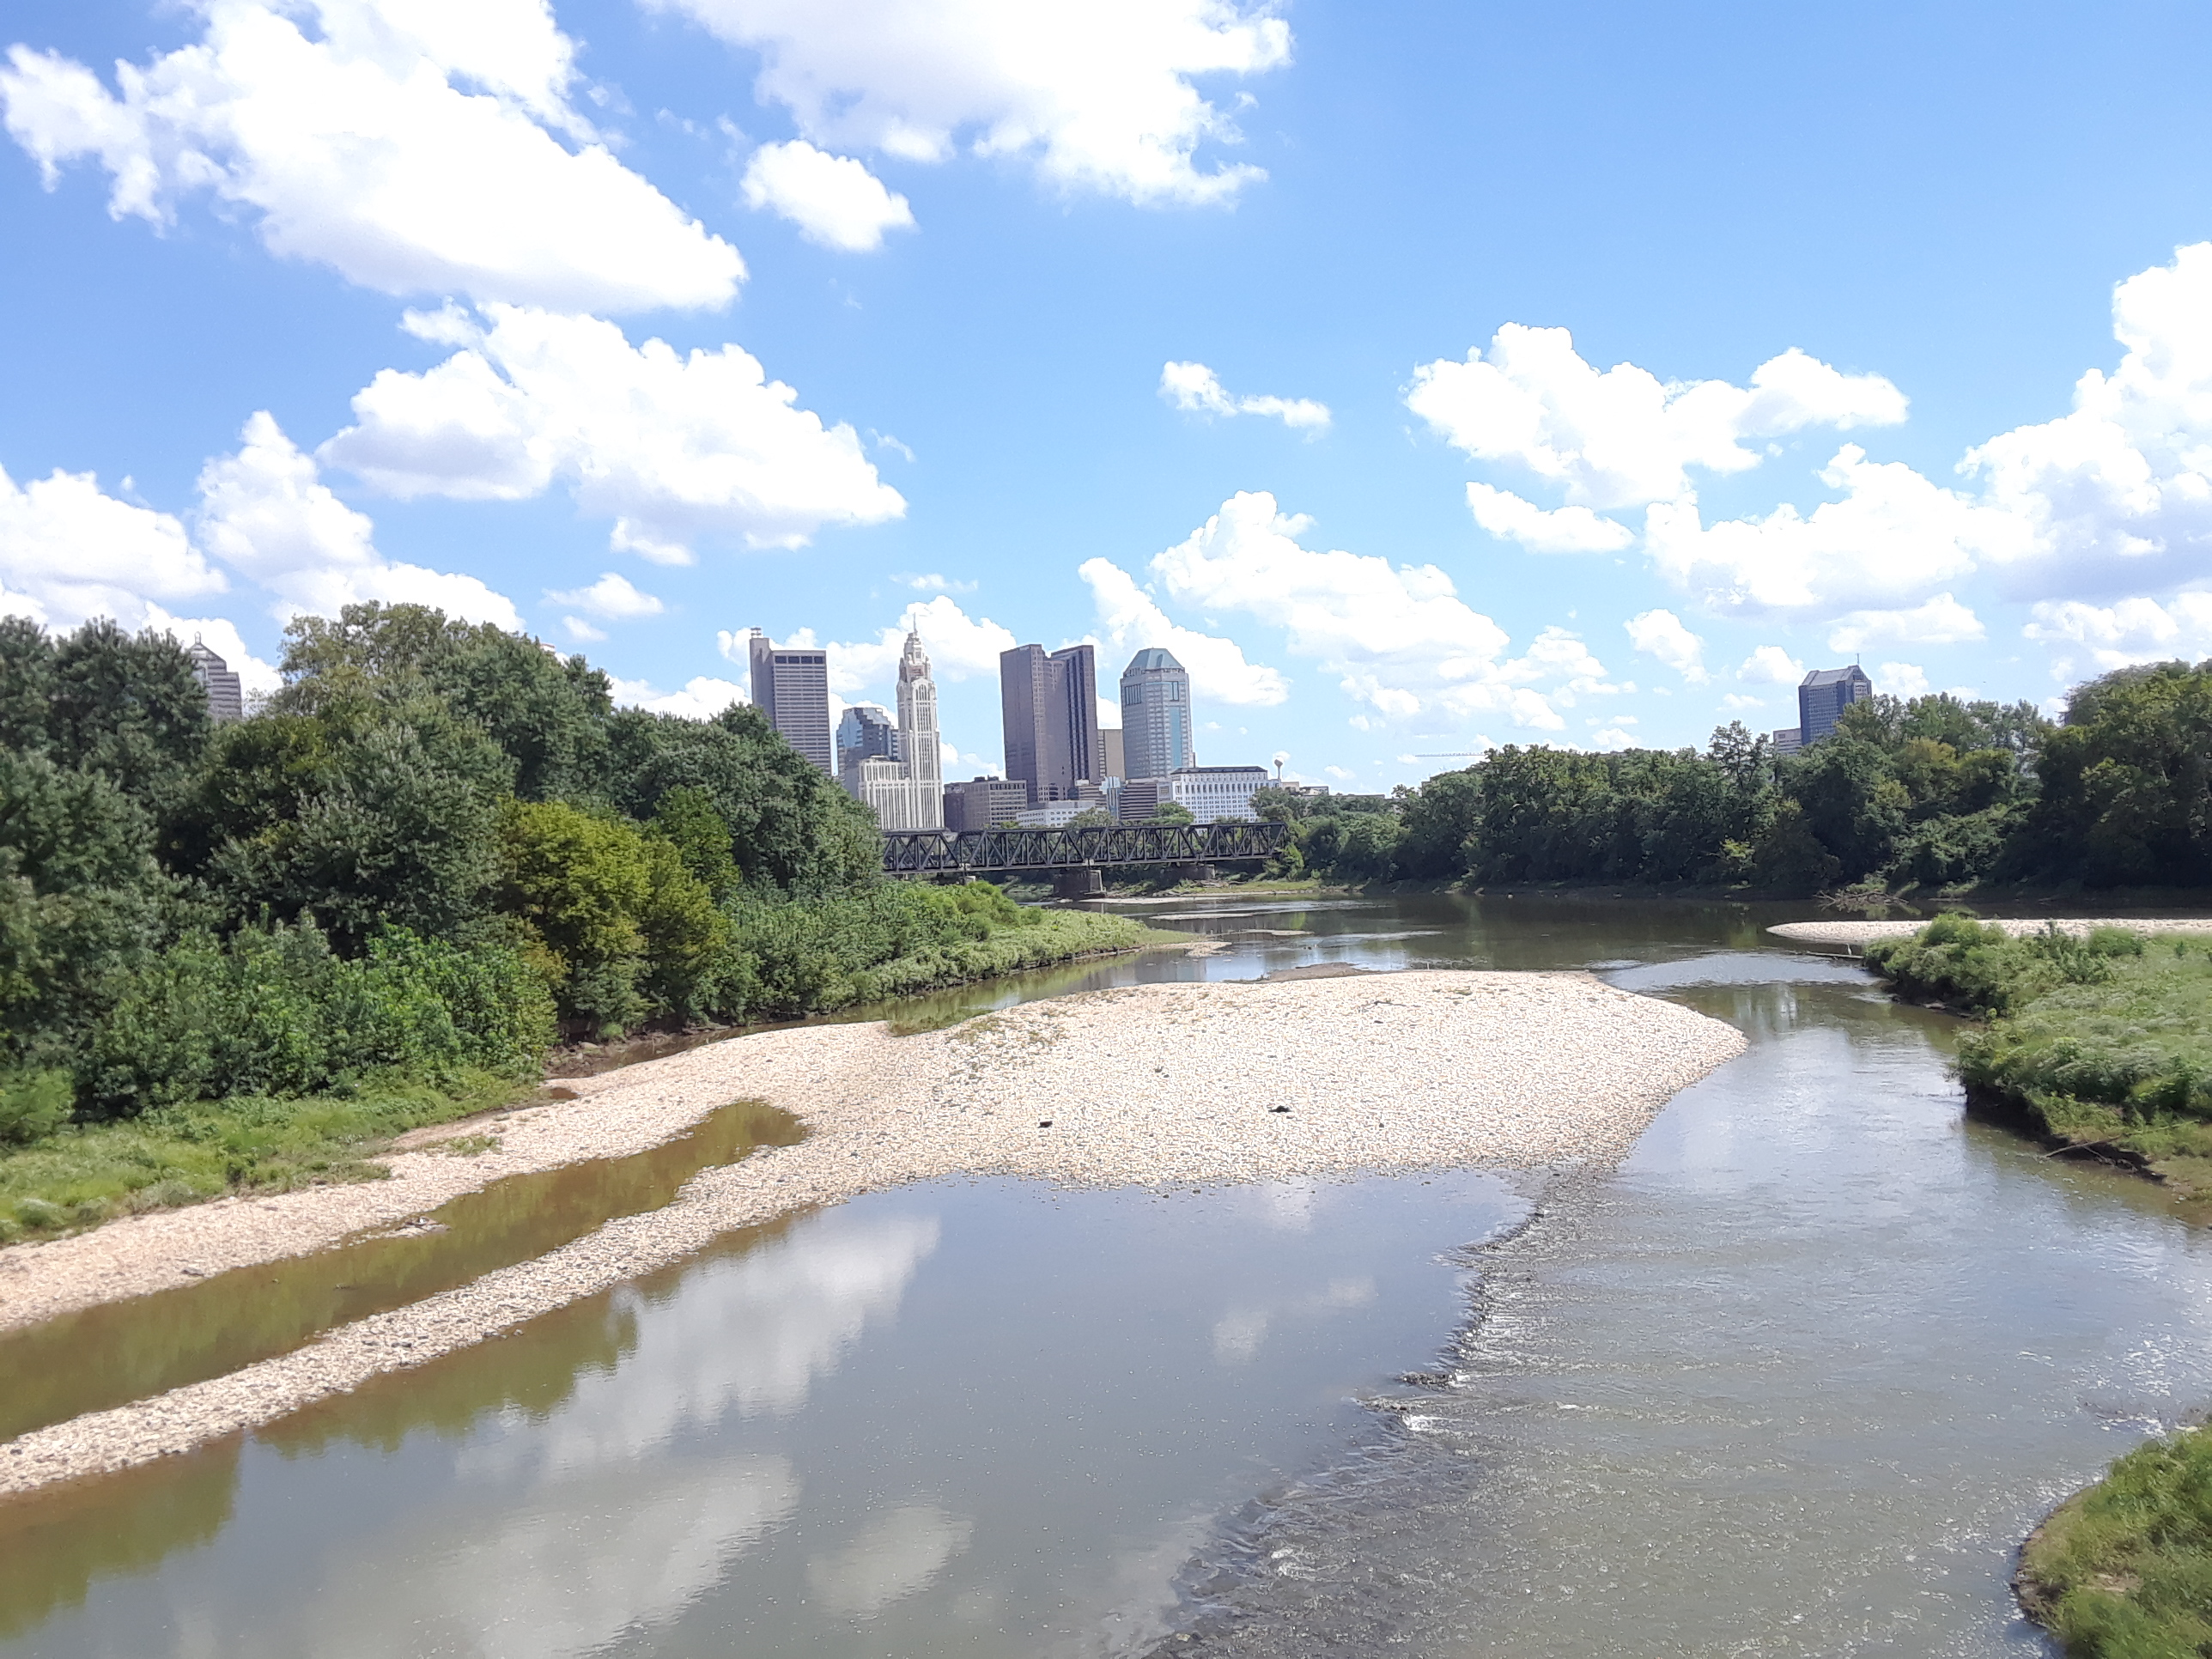 Confluence Park Riverbank and Bike Trail Clean Up 2019